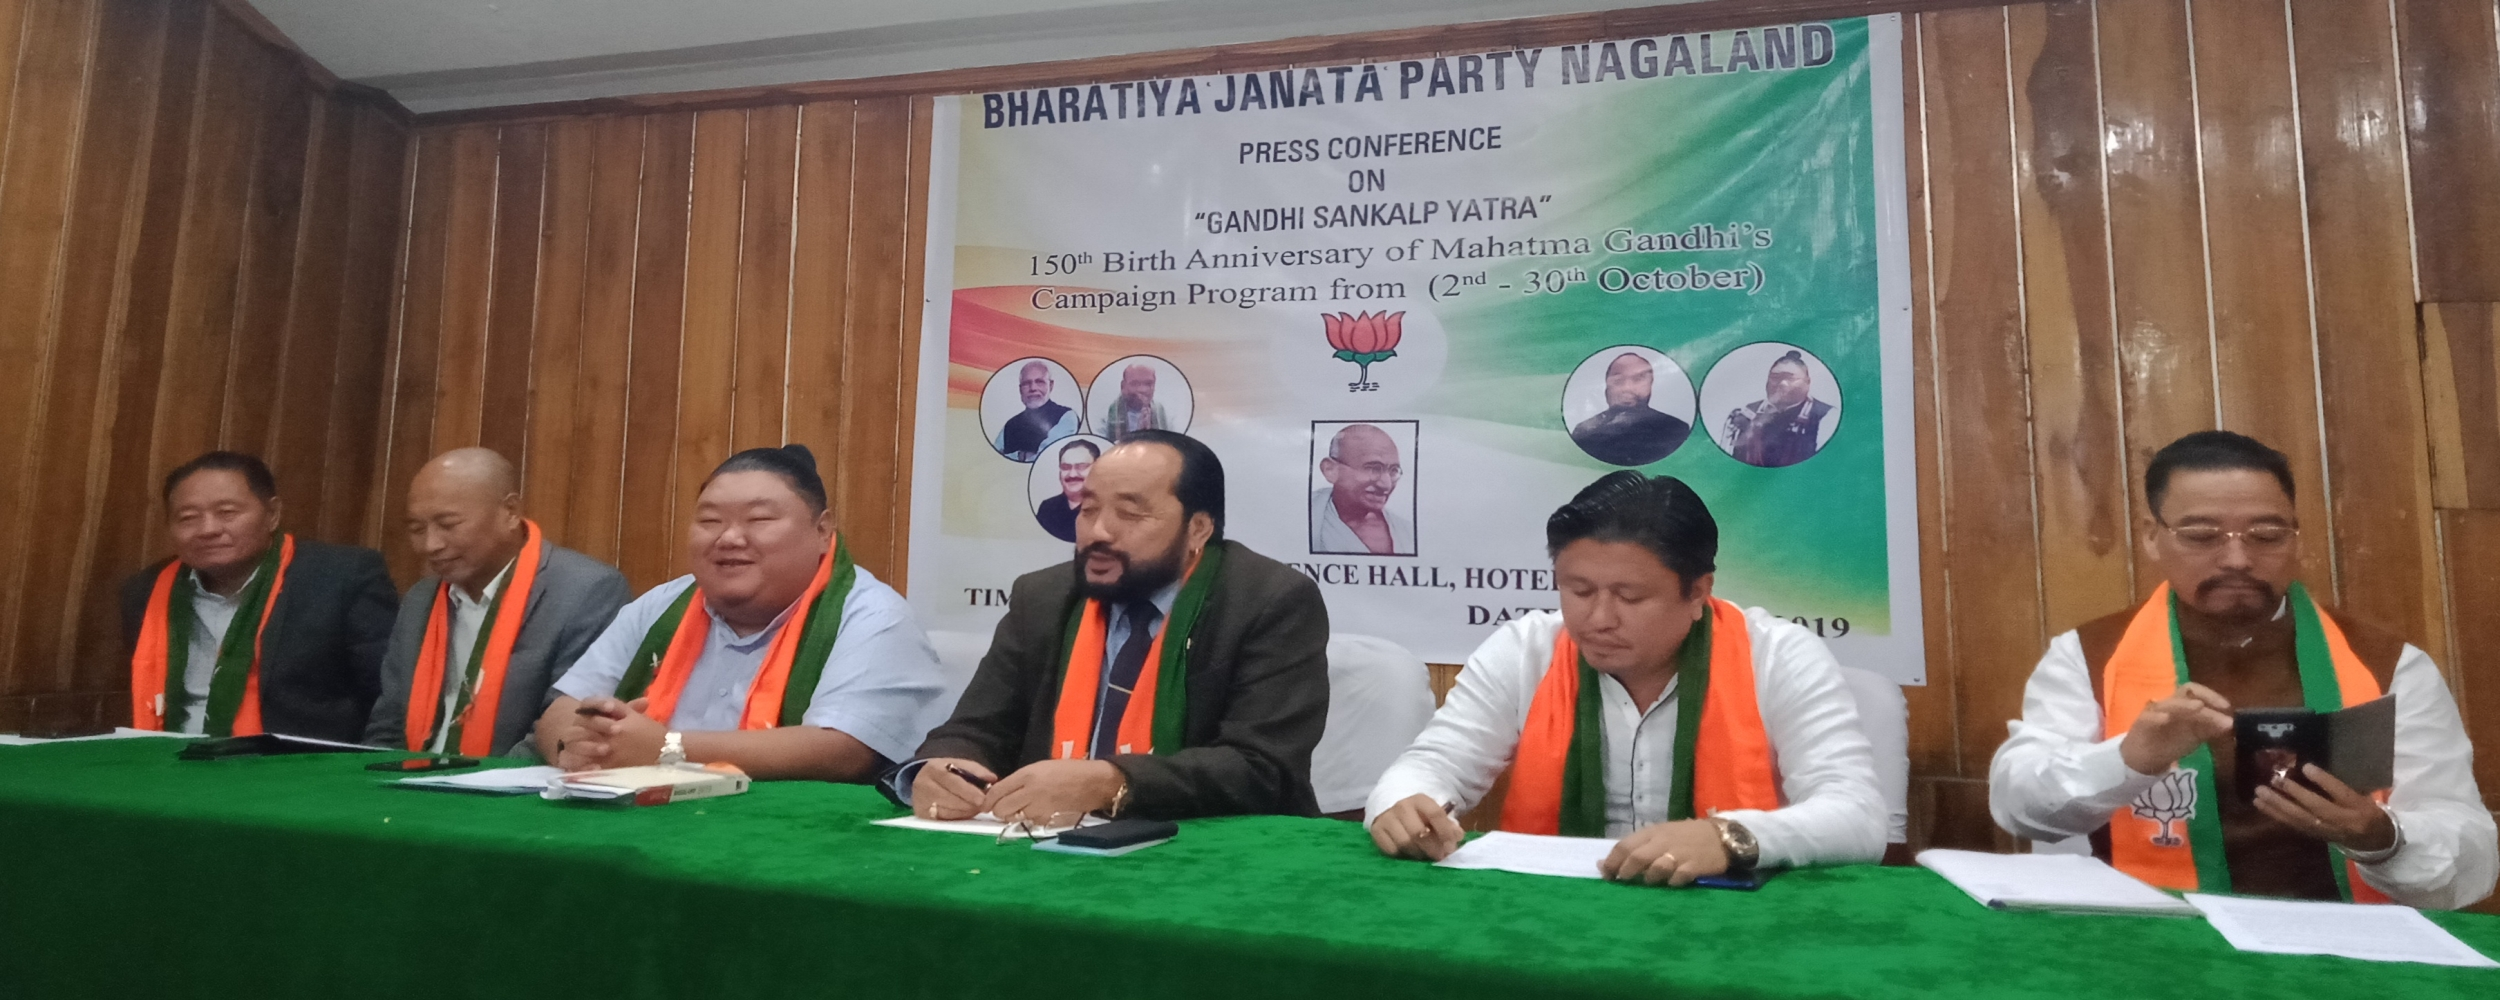 Nagaland State BJP leaders at the press conference